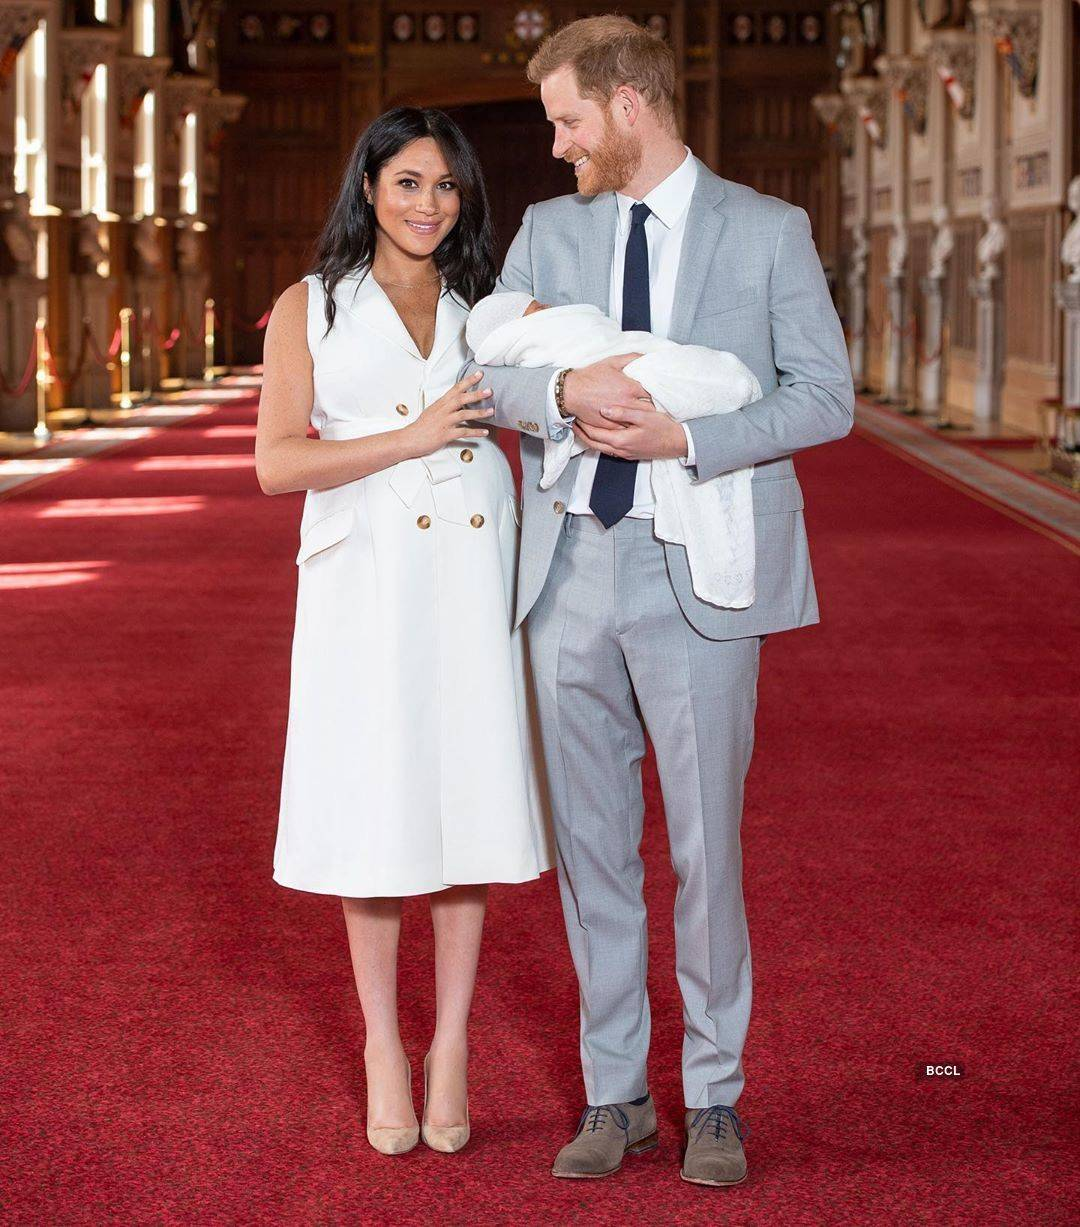 First pictures of Meghan Markle & Prince Harry's baby boy go viral...